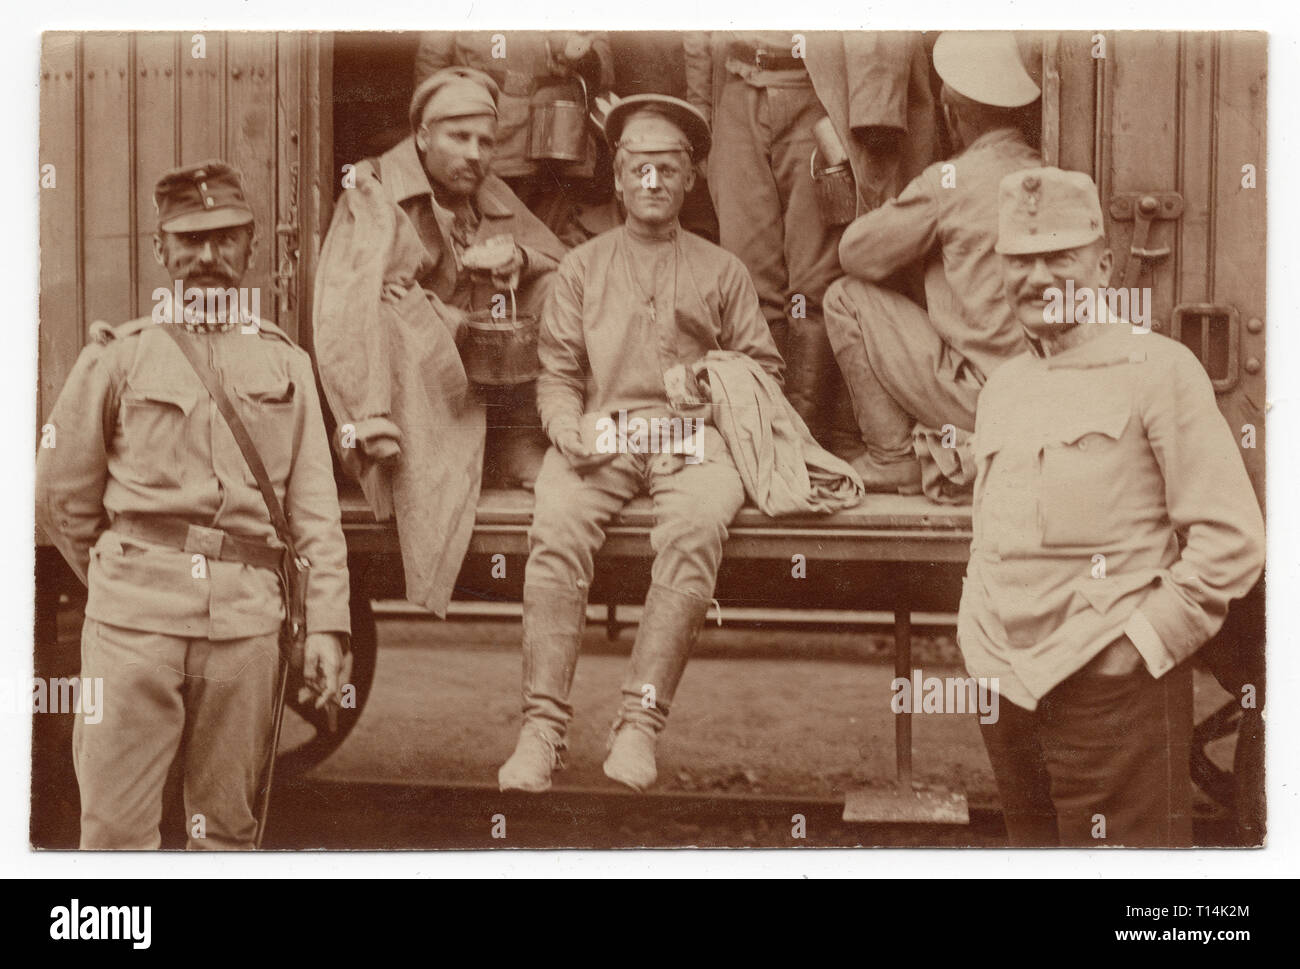 Russian prisoners of war pictured with the Austrian convoy while being transported during the First World War in the railway carriage probably on some railway station in the modern-day Czech Republic. Black and white vintage photograph by an unknown photographer. Courtesy of the Azoor Photo Collection. Stock Photo